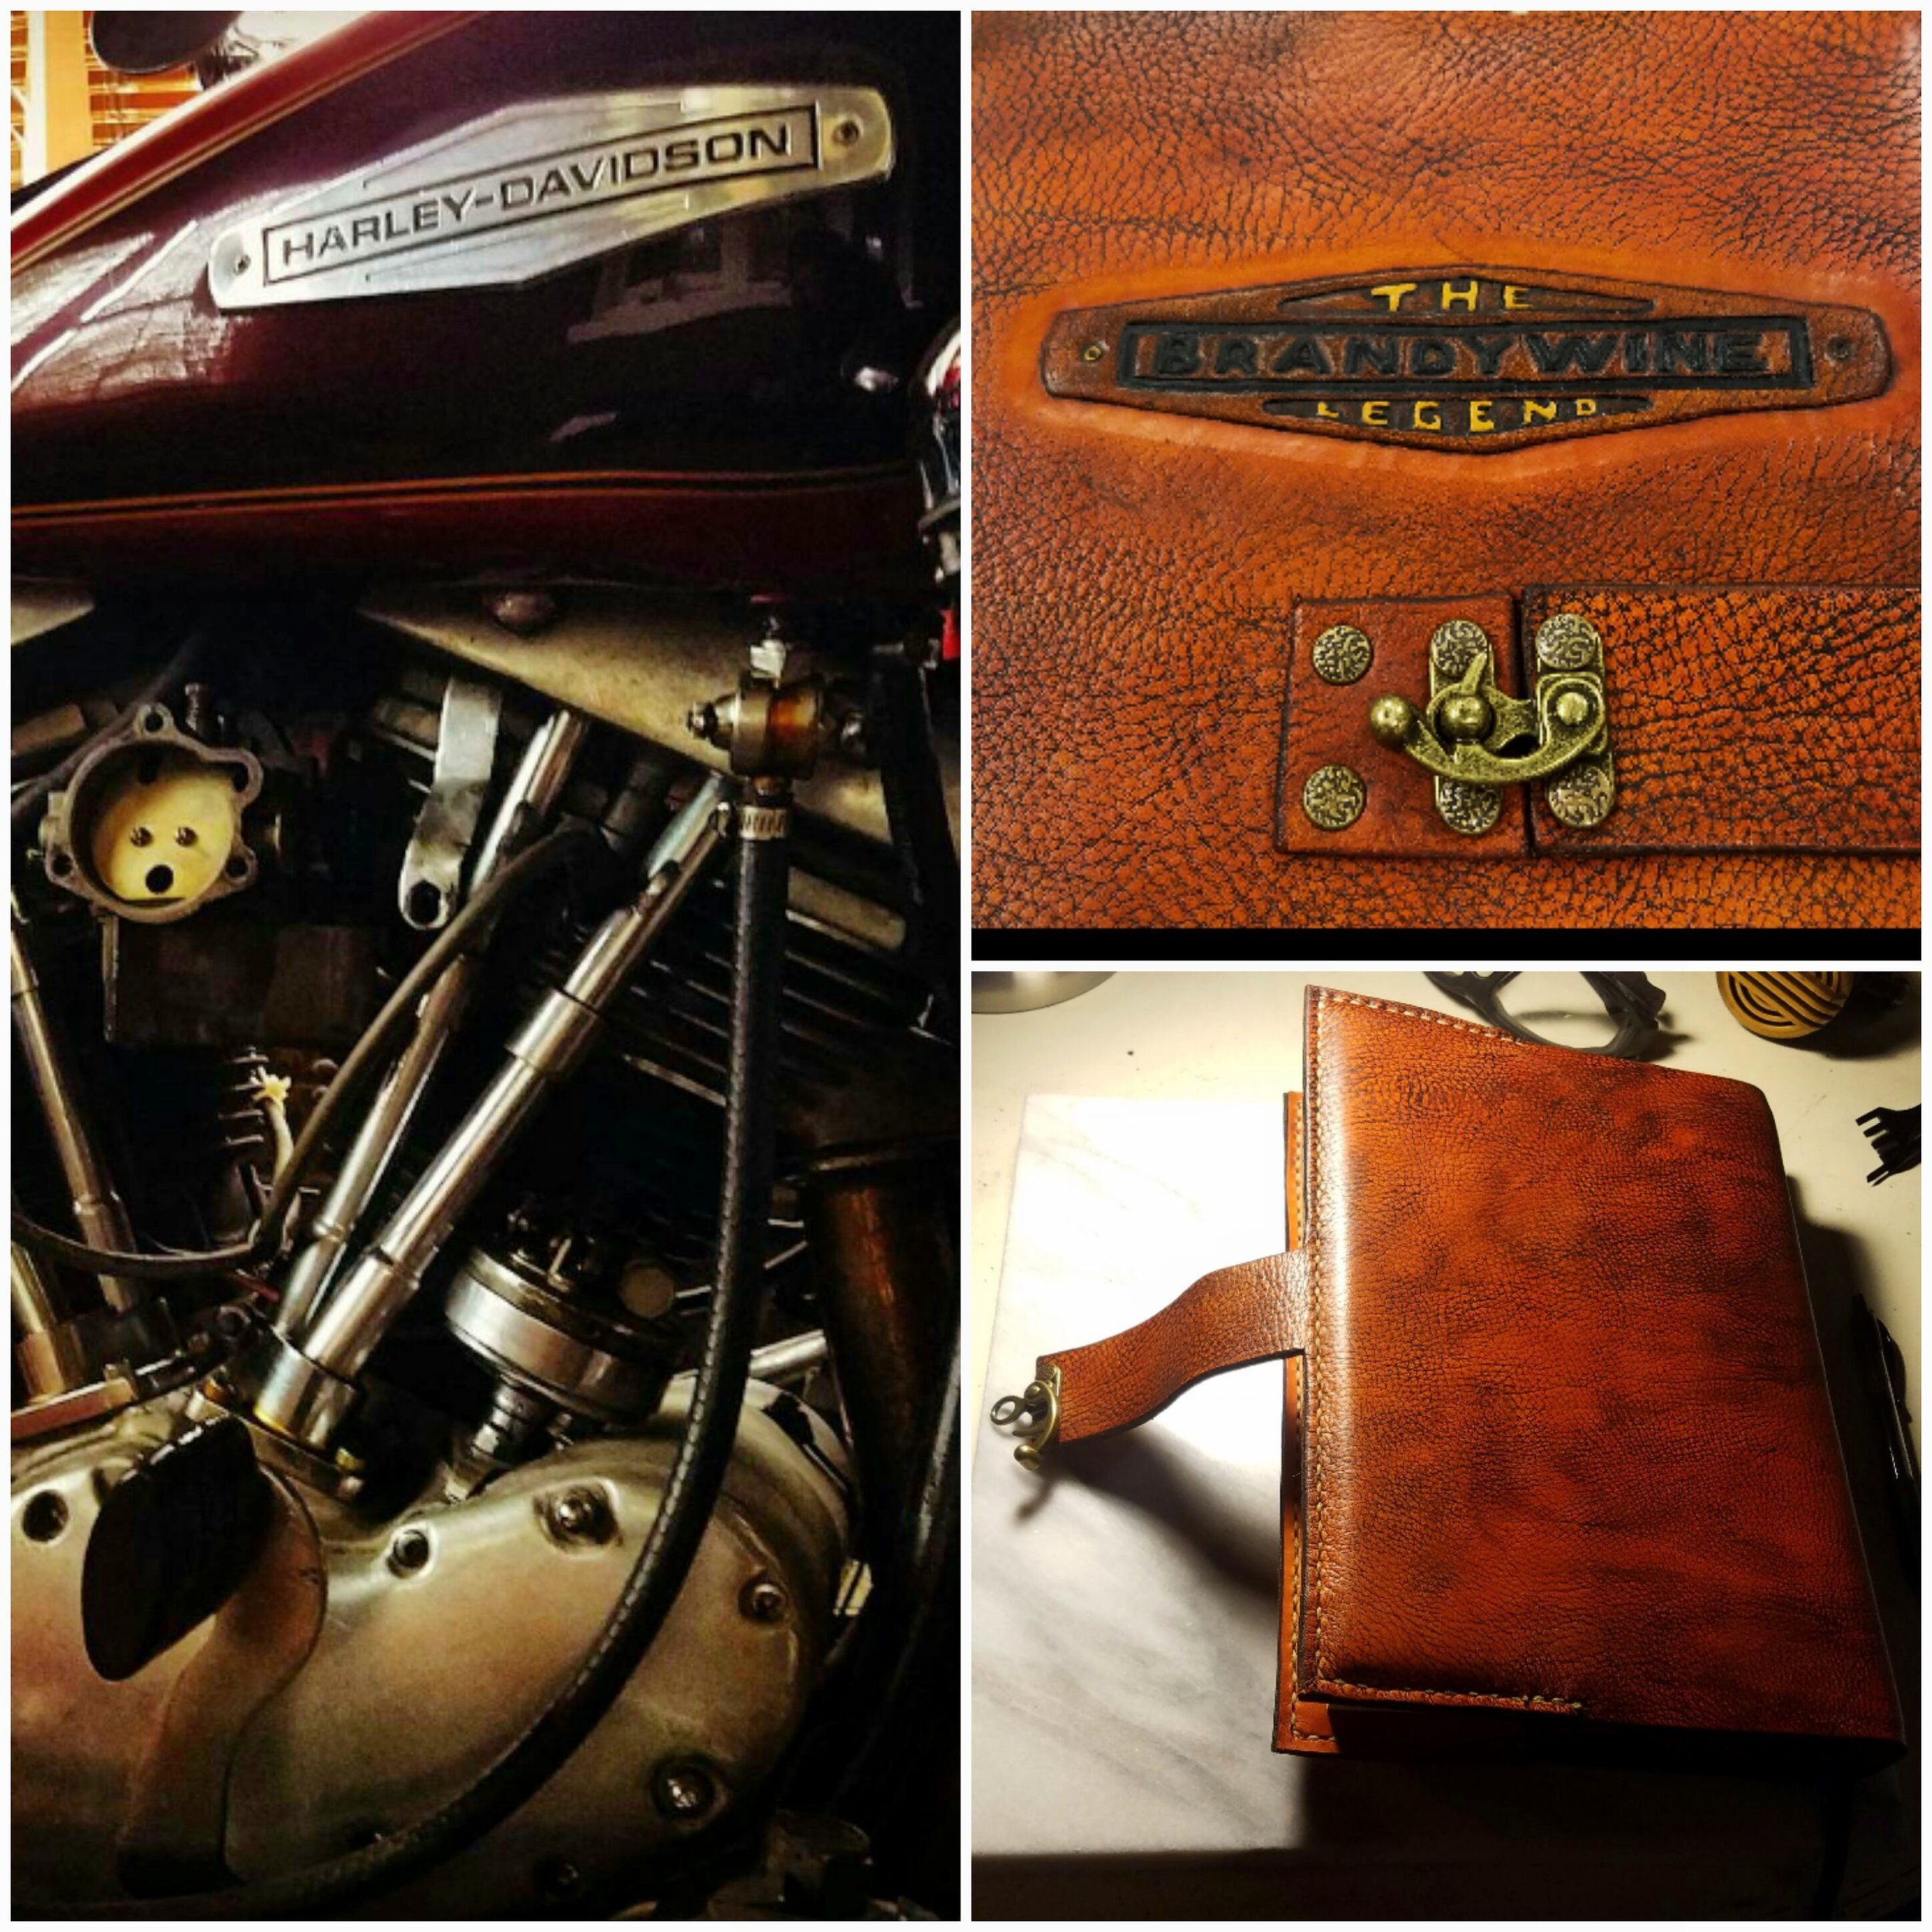 Handmade Leather-bound Road Journal for a 1966 Electra-glide named Brandywine